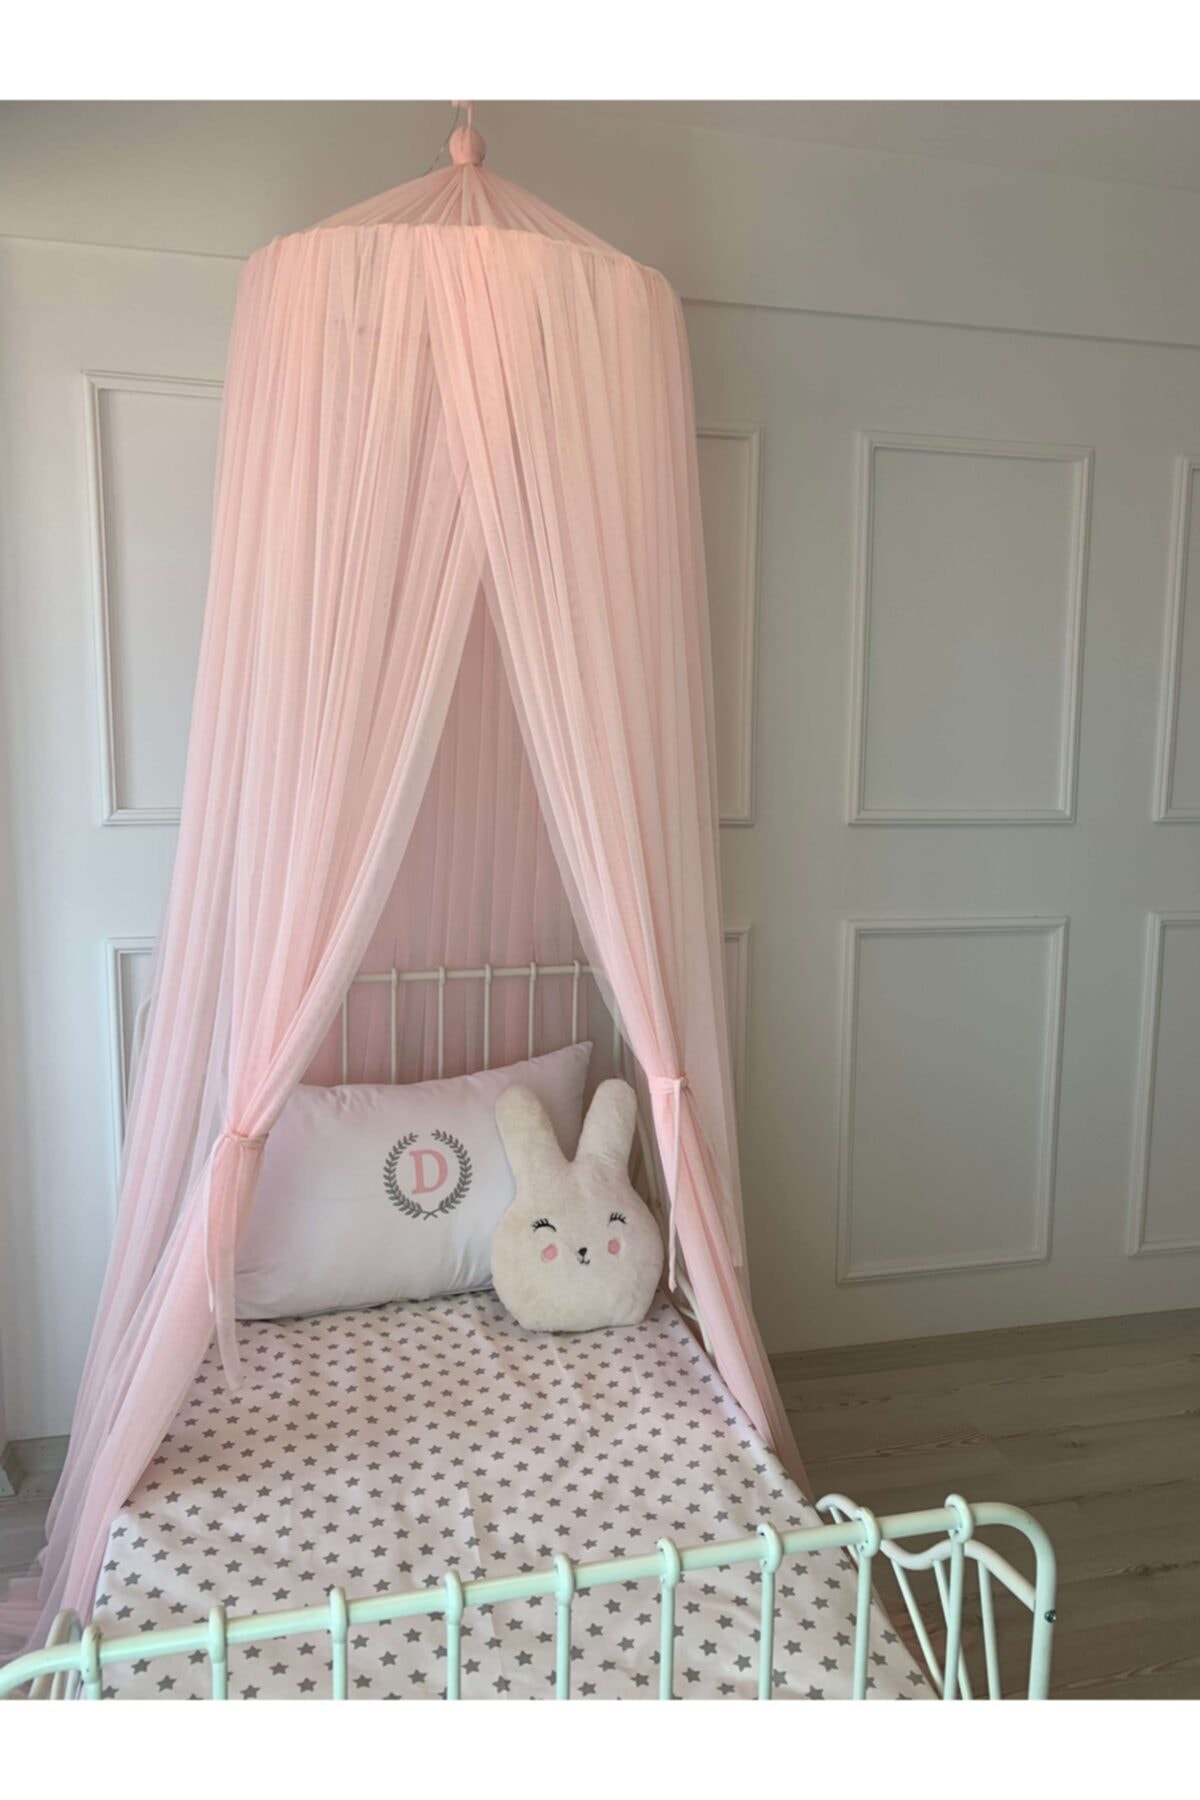 Baby Crib Mosquito Net Tulle Pink (14 Meters) Fly Screen Toddler Infant Crib Bed Cover Protector Made in Turkey